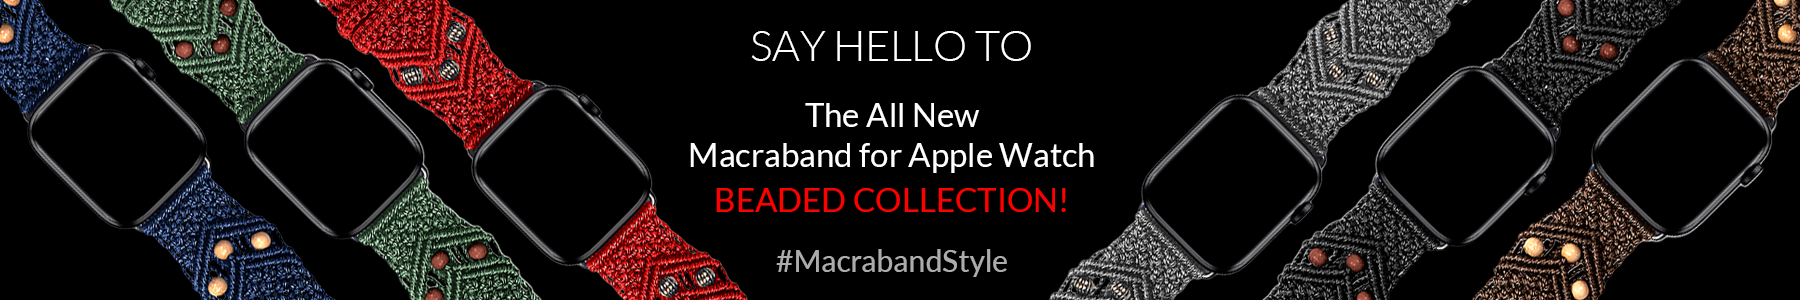 Macraband for Apple Watch 308 Collection